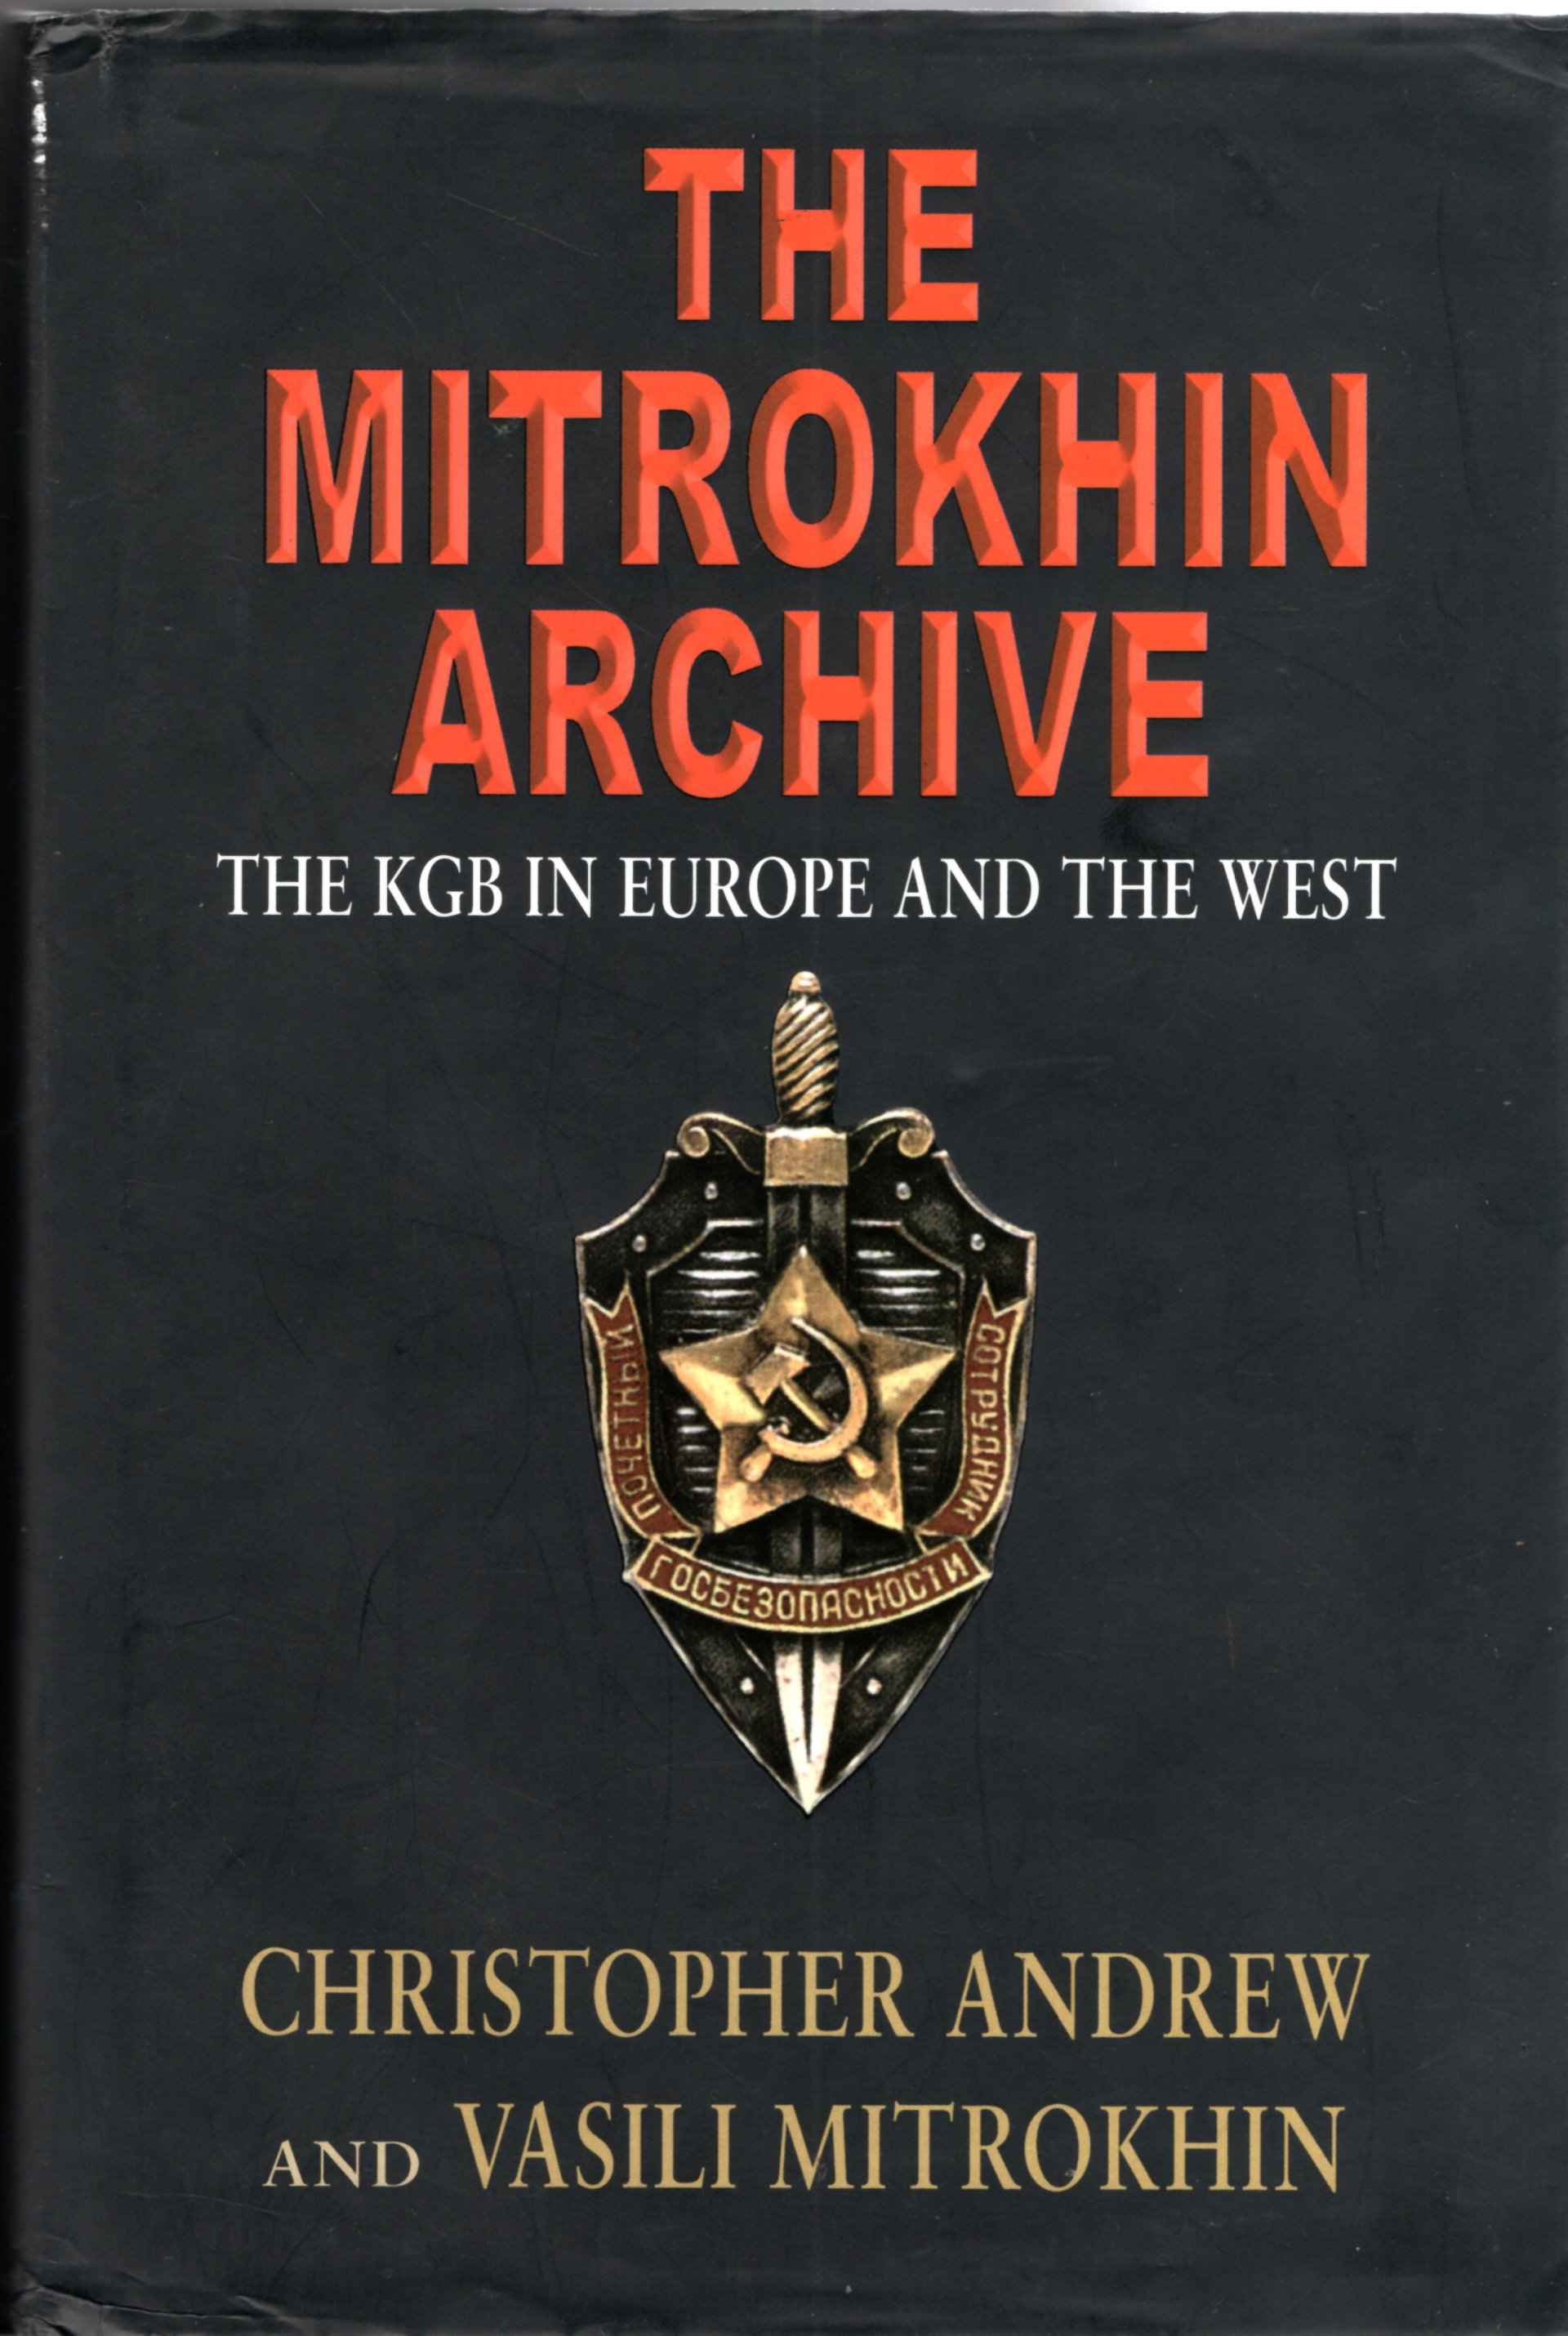 Image for The Mitrokhin Archive: The KGB in Europe and the West